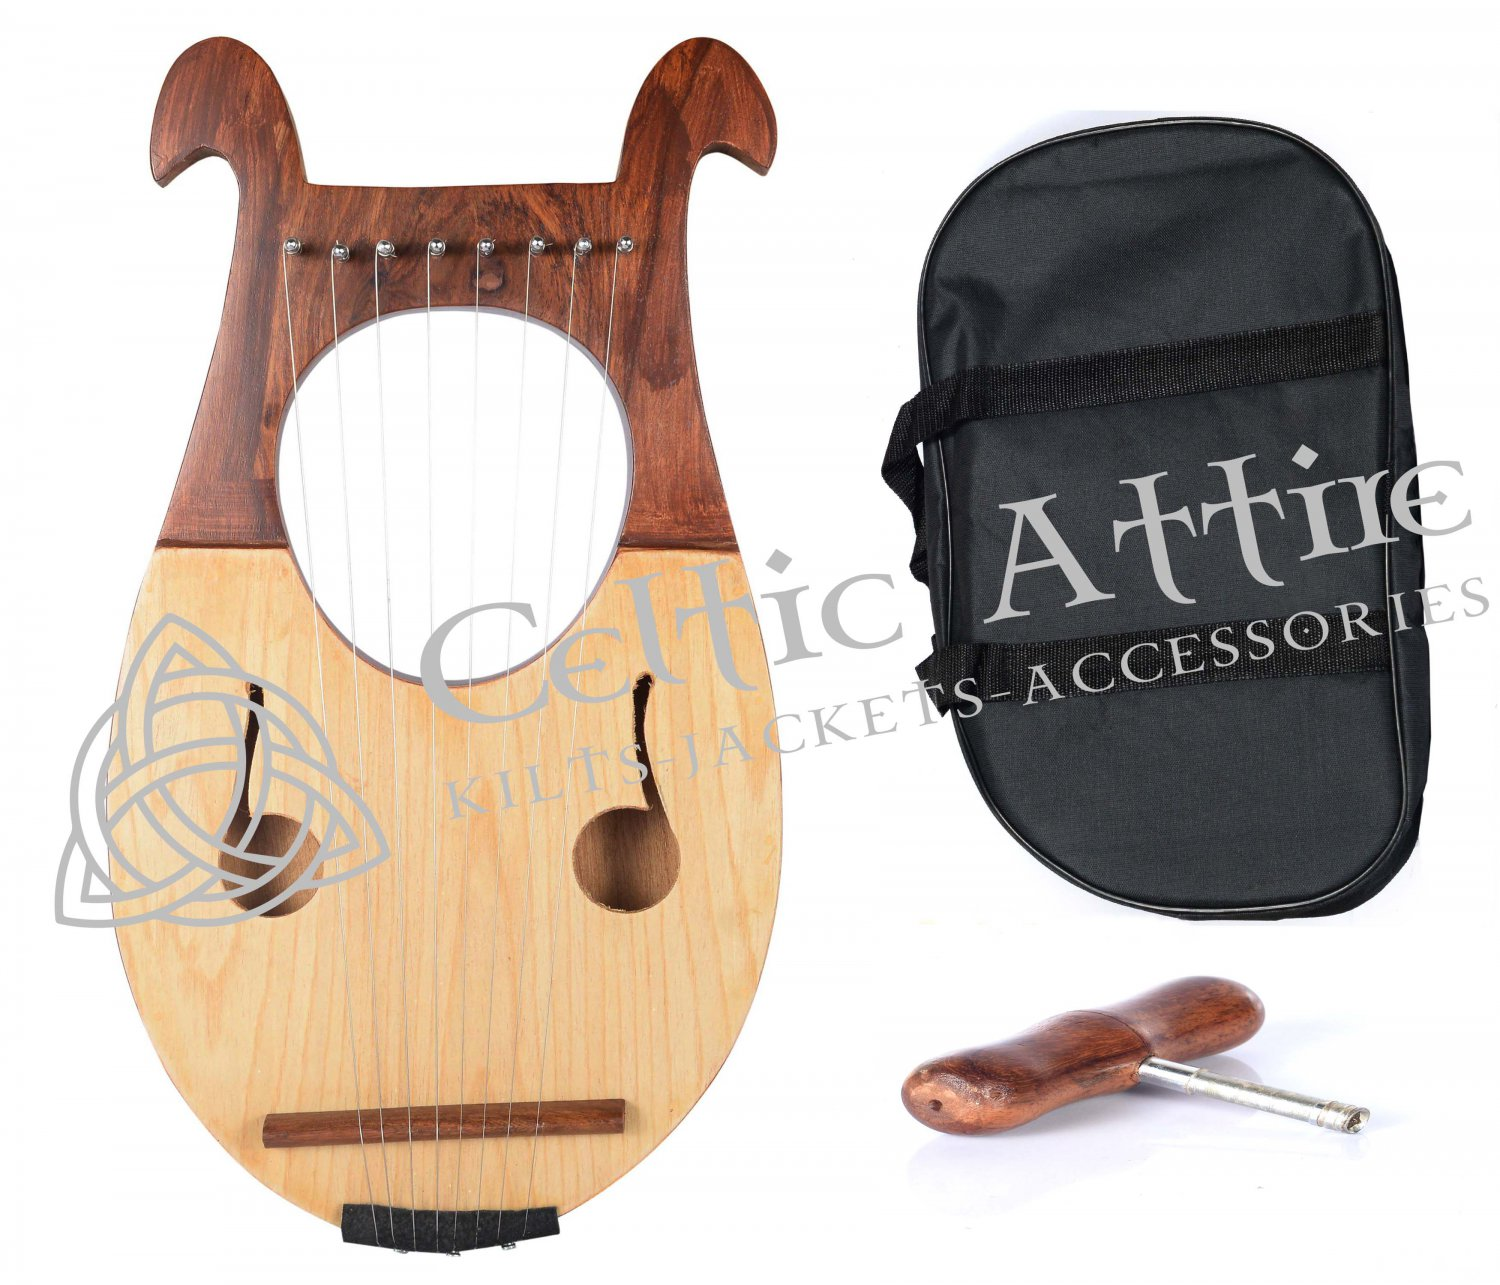 NEW LYRE HARP 8 Metal Strings Rosewood Hand Engraved With Black Bag and Key